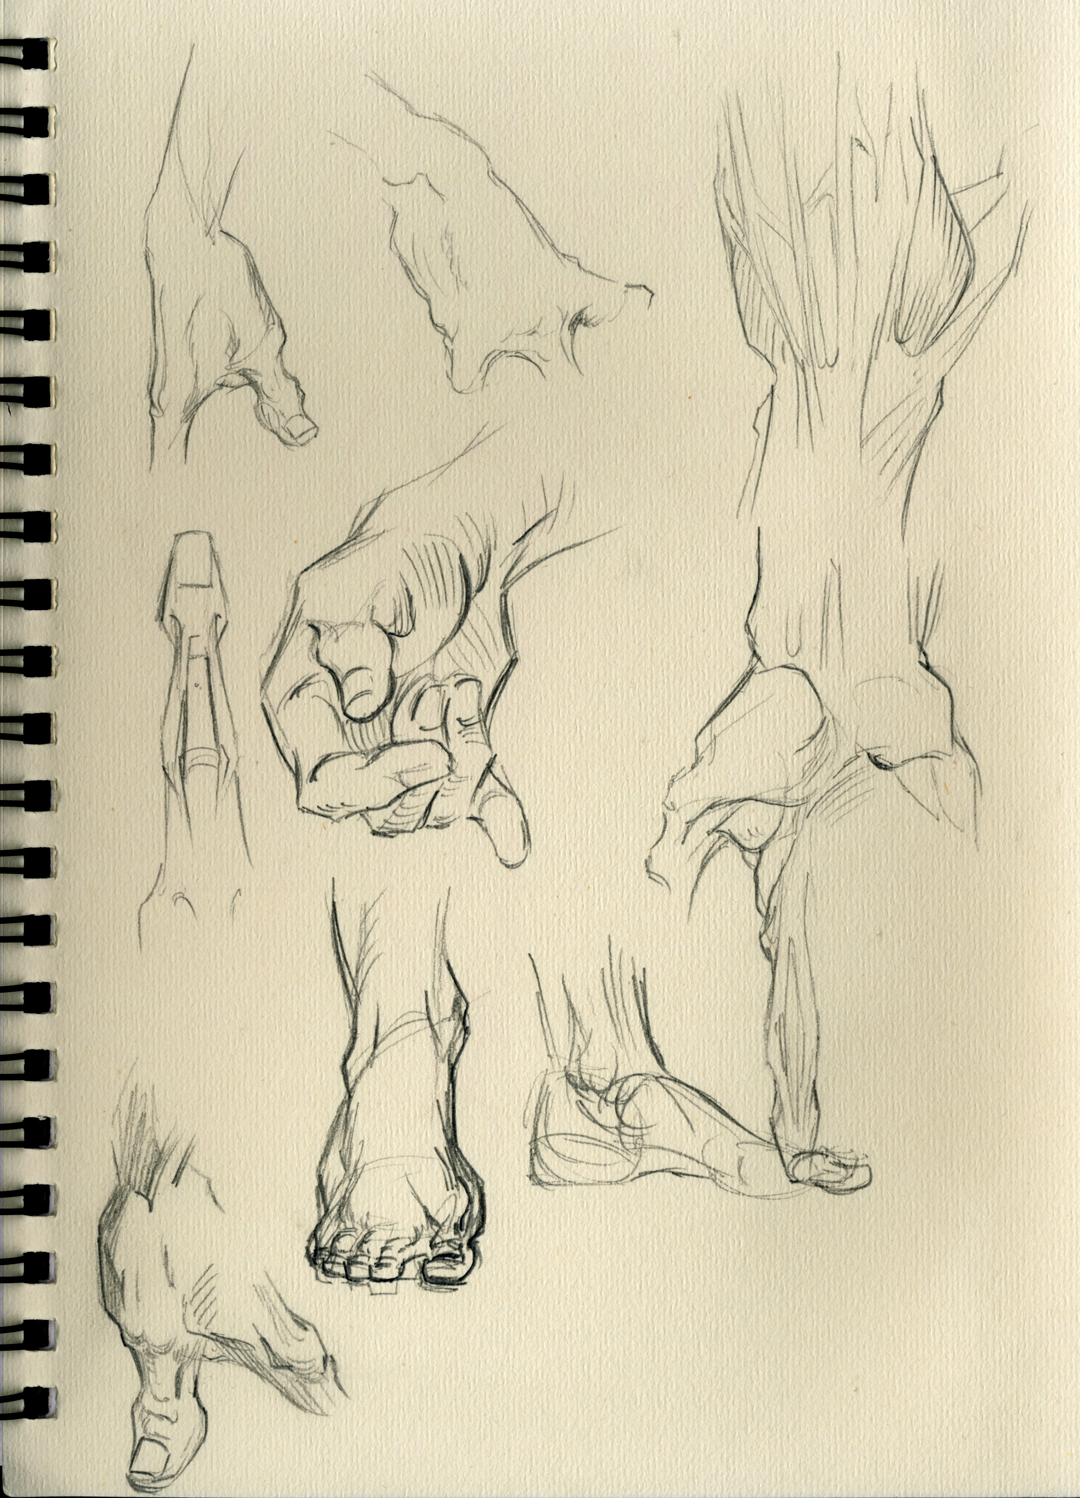 Hands-Feet sketches by emmshin